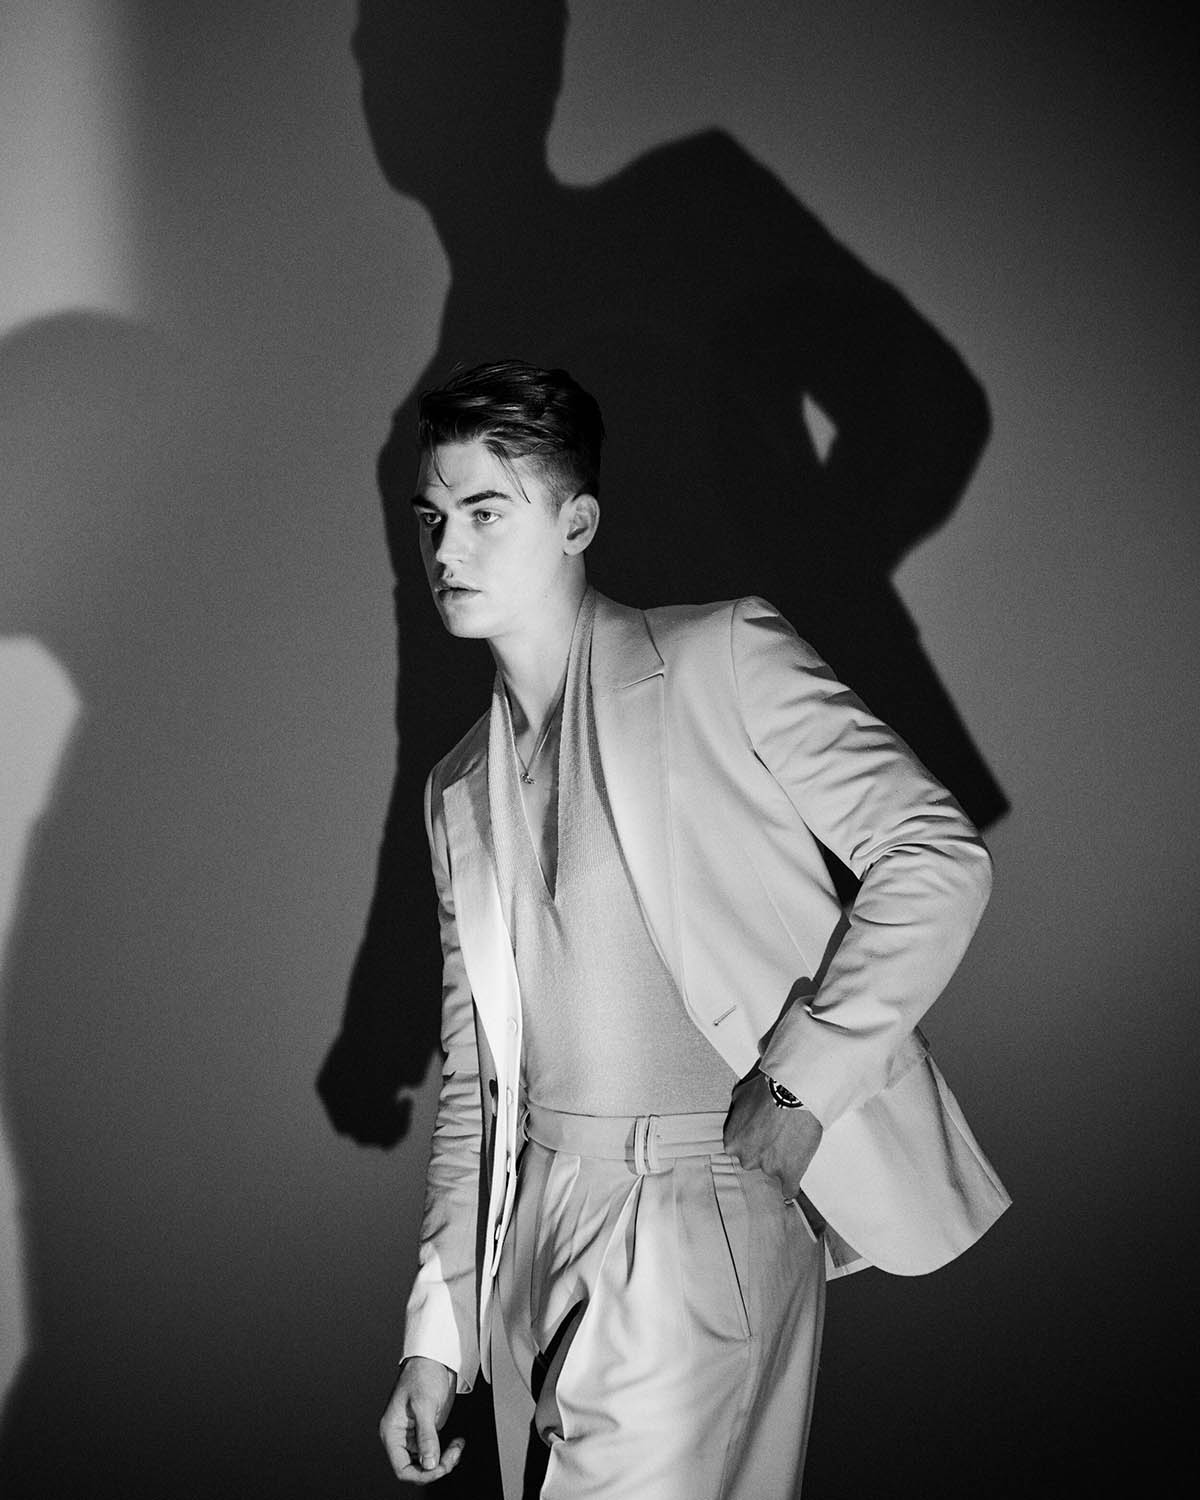 Hero Fiennes-Tiffin covers Flaunt Magazine Issue 173 by Jason Hetherington